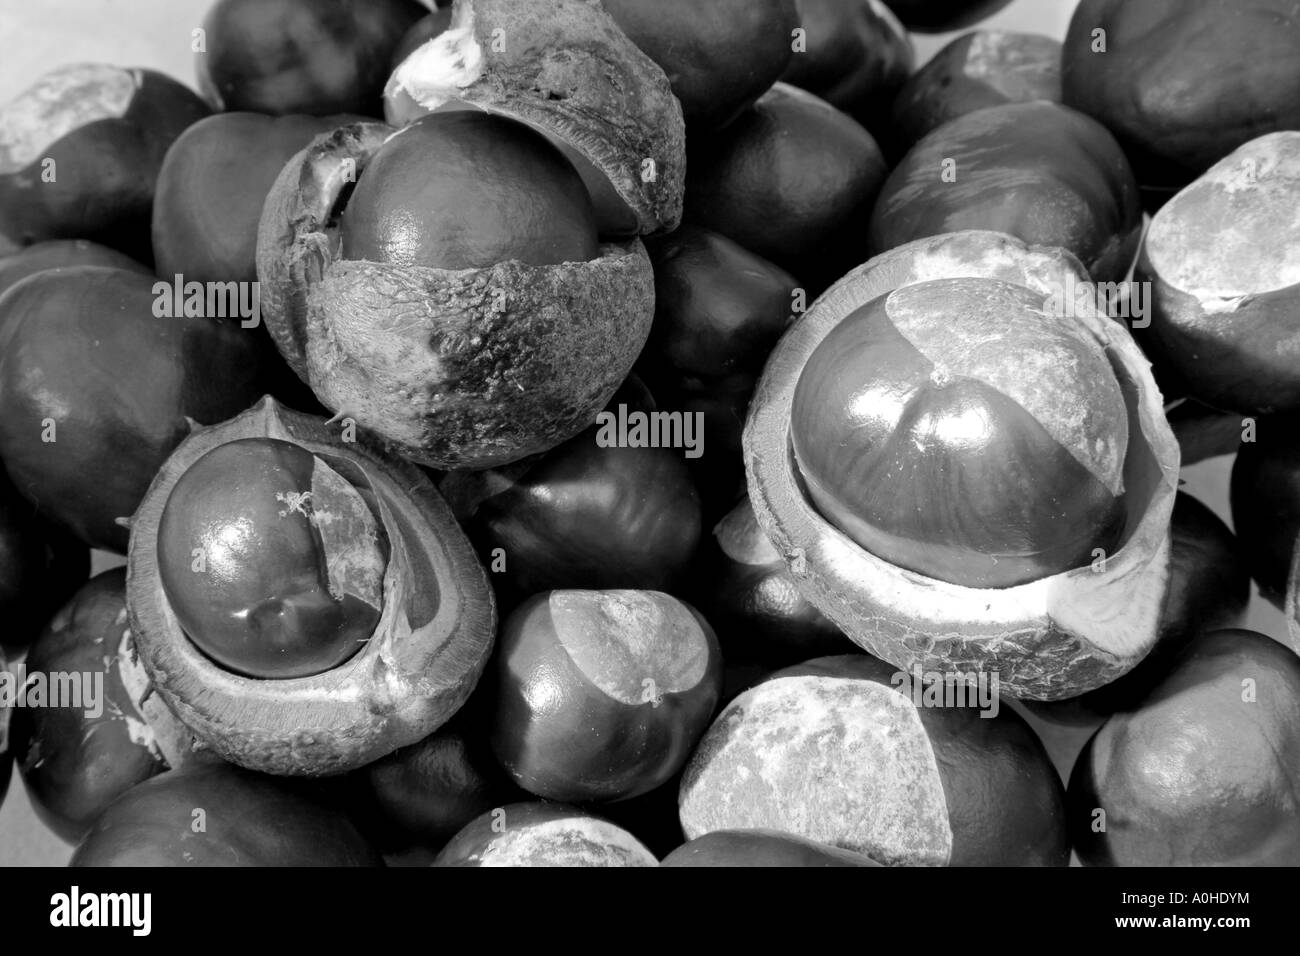 group of conkers - Stock Image